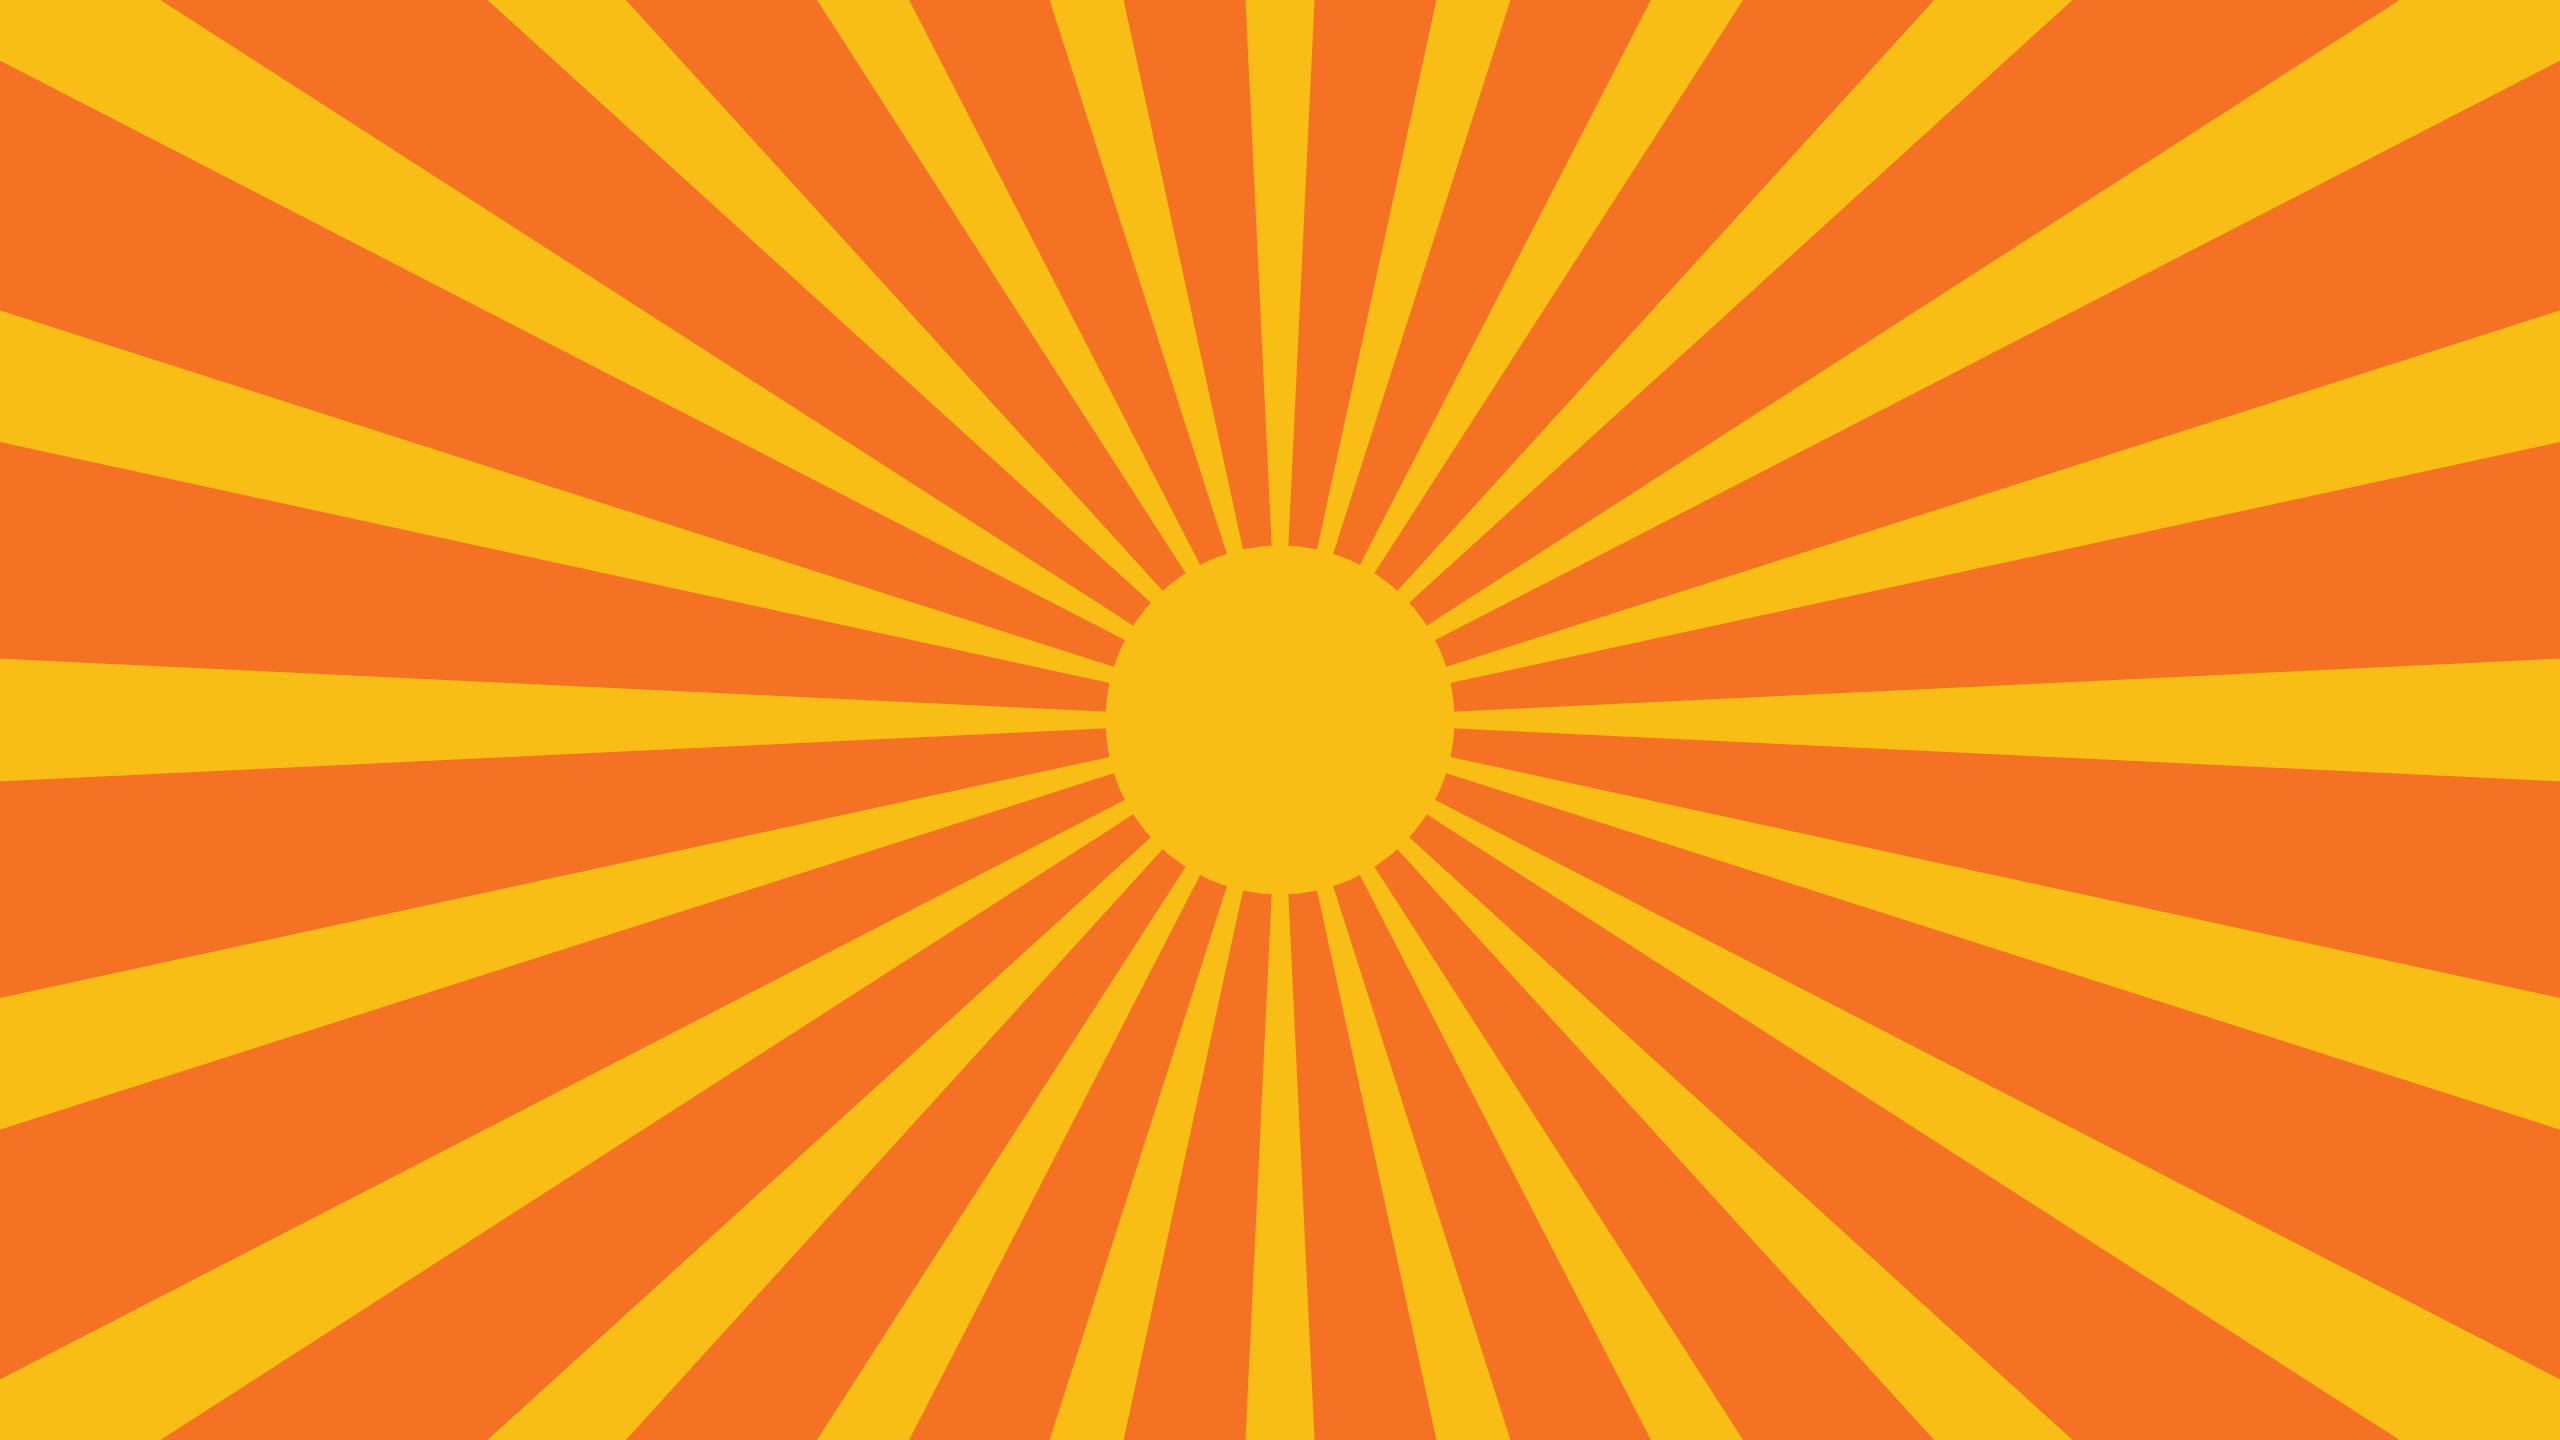 Sun Rays Png image #36876